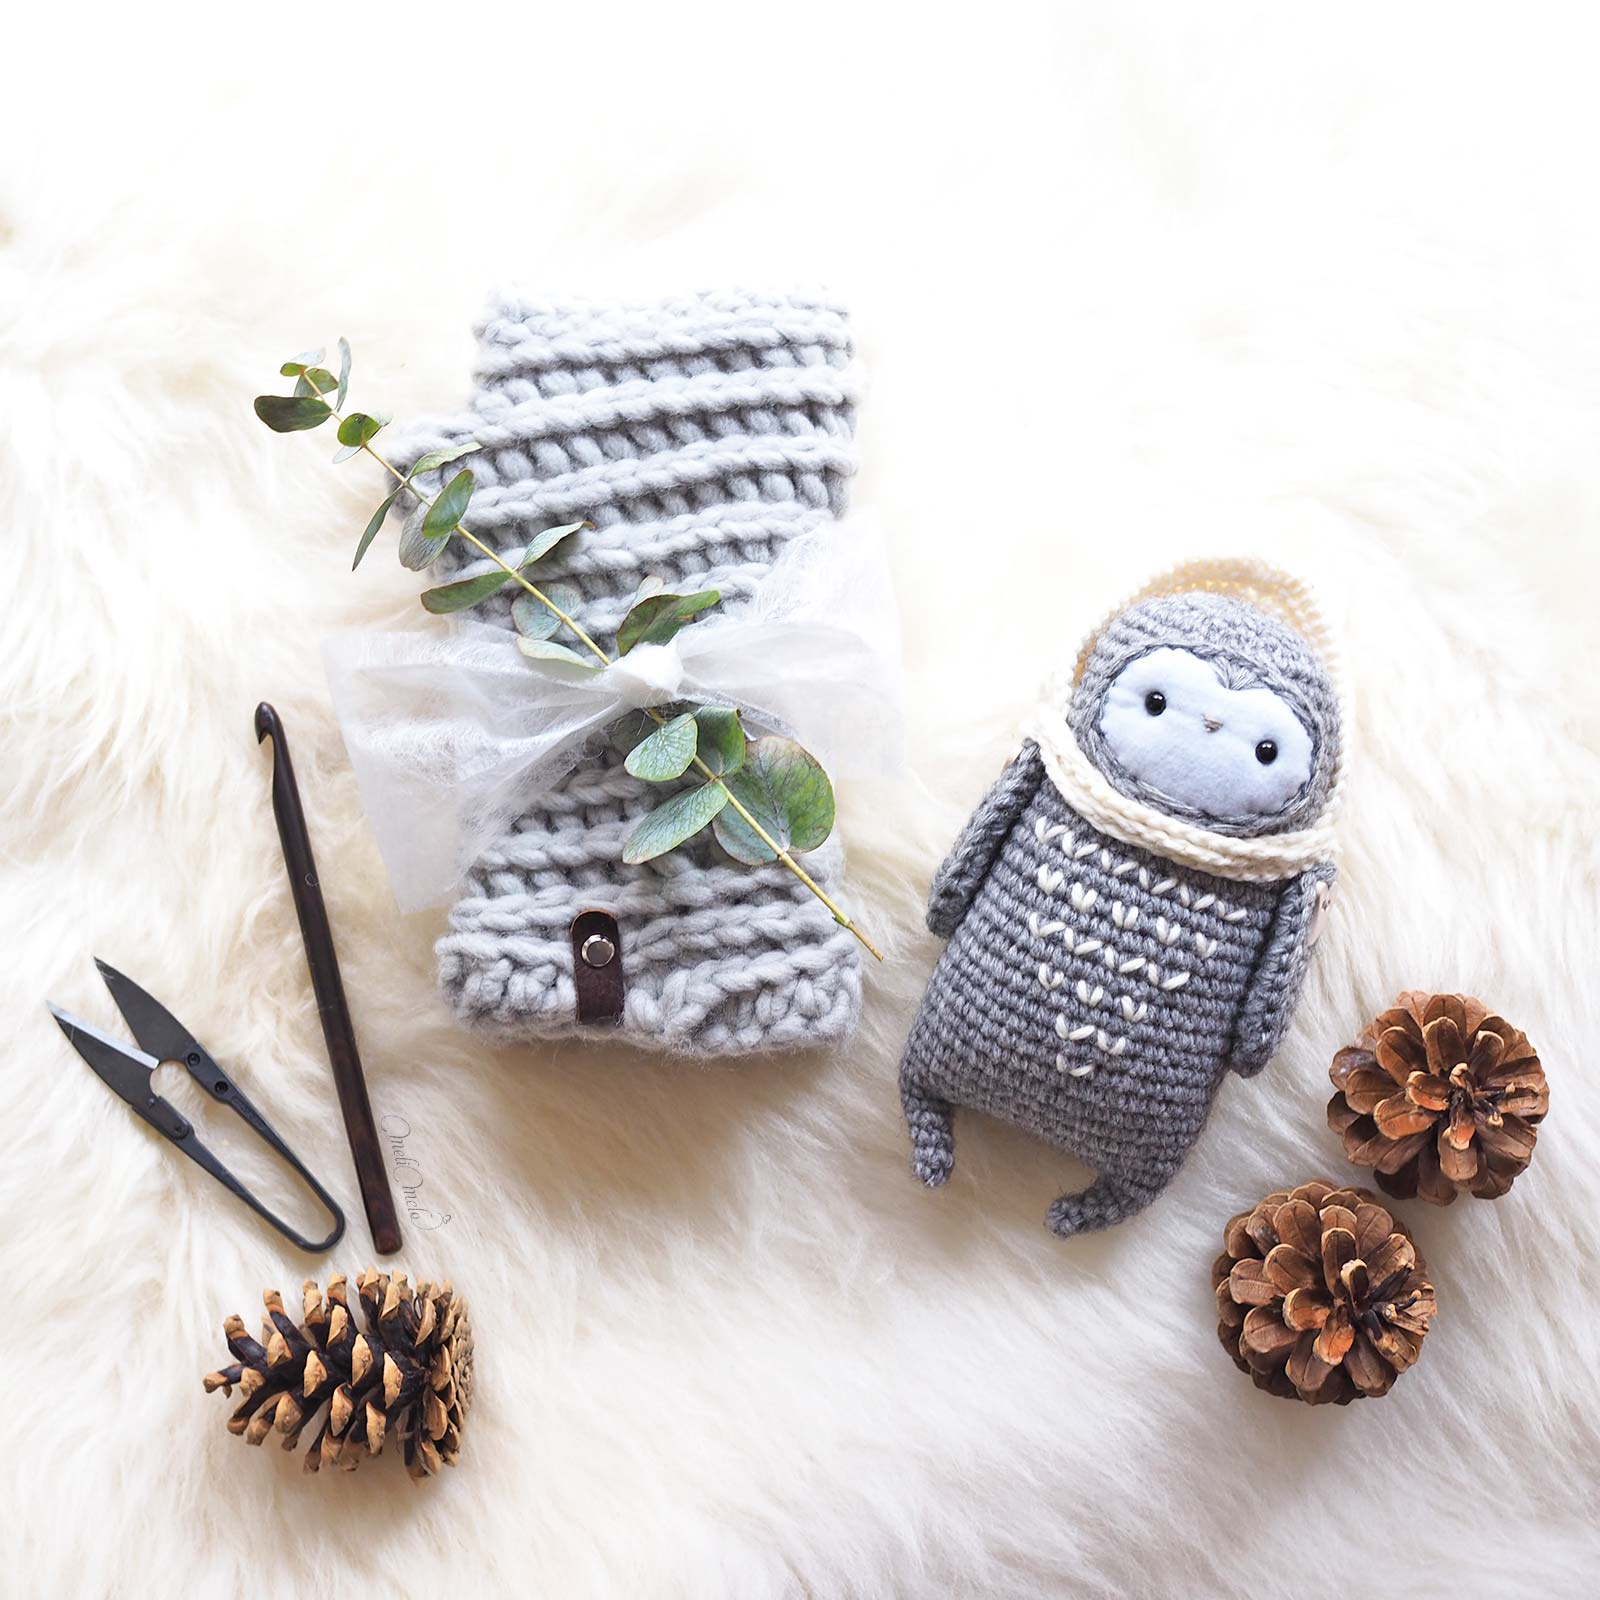 cadeau hiver Noël mitaines chouette lutine laine rico design we are knitters wool and the gang laboutiquedemelimelo